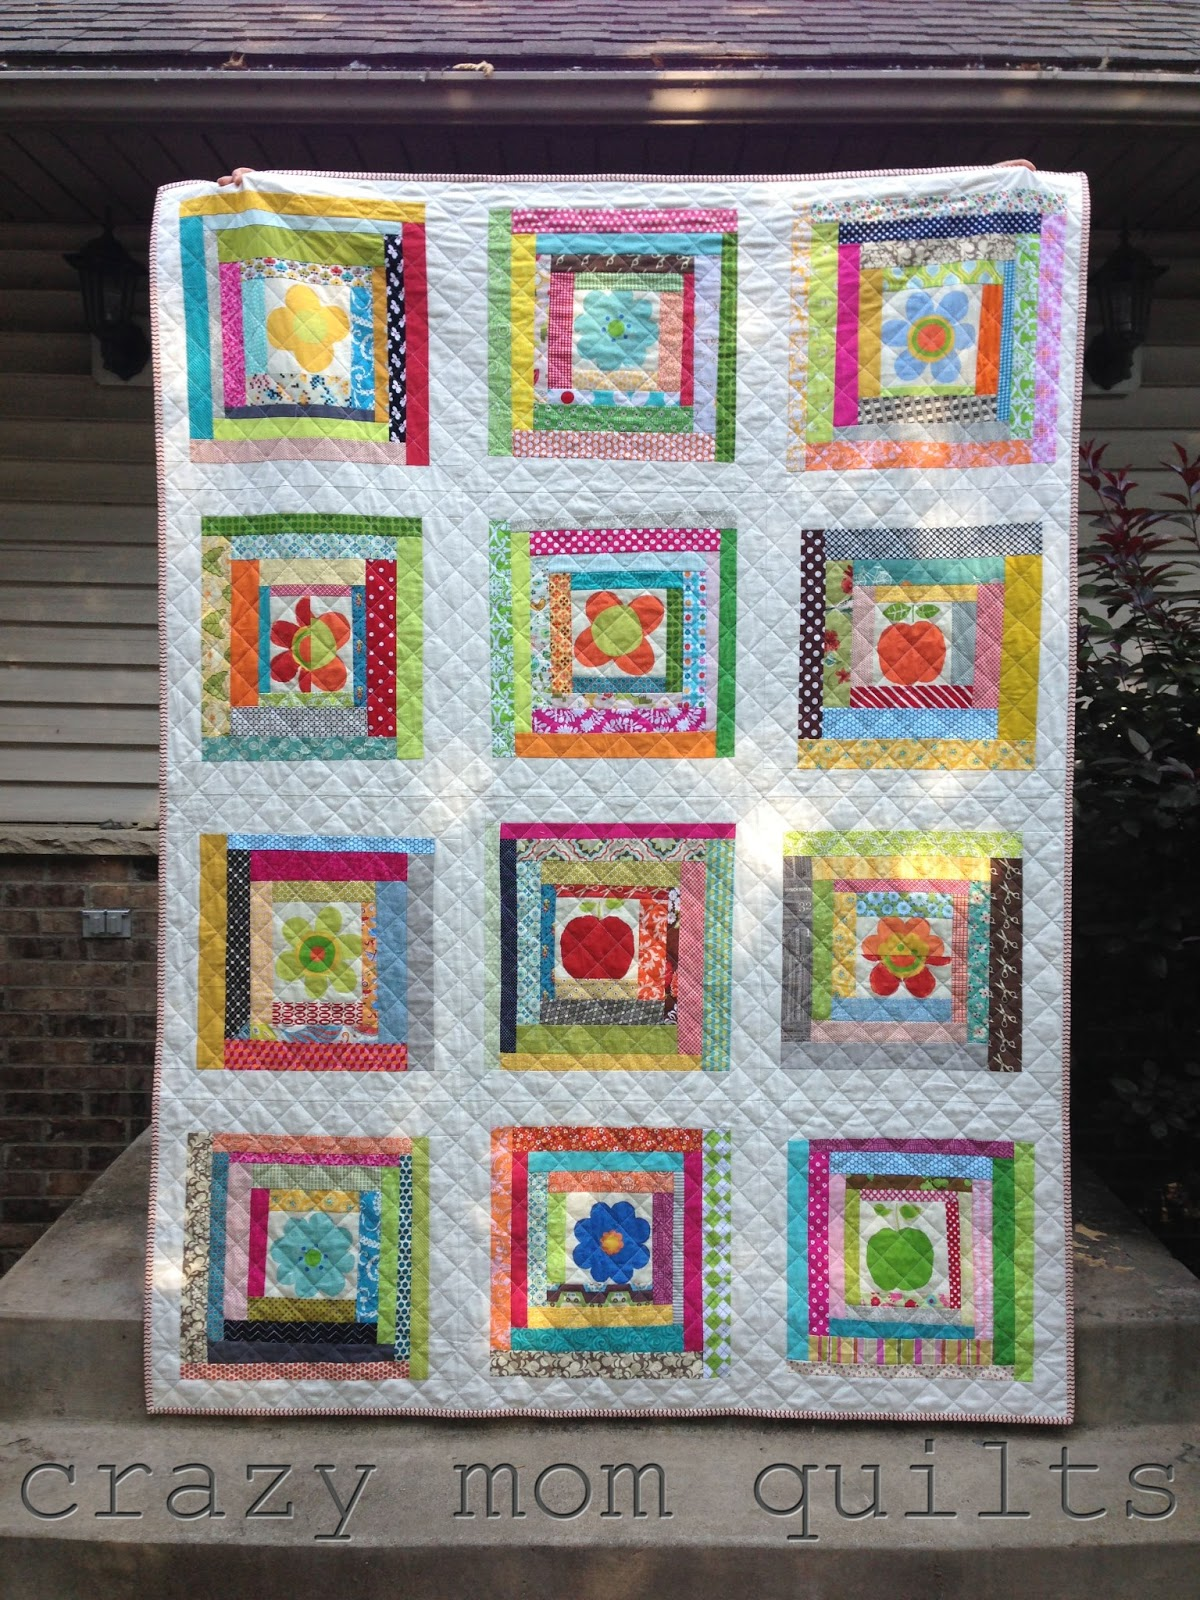 update in log tag cabins quilt work quilting progress cabin ufocoach